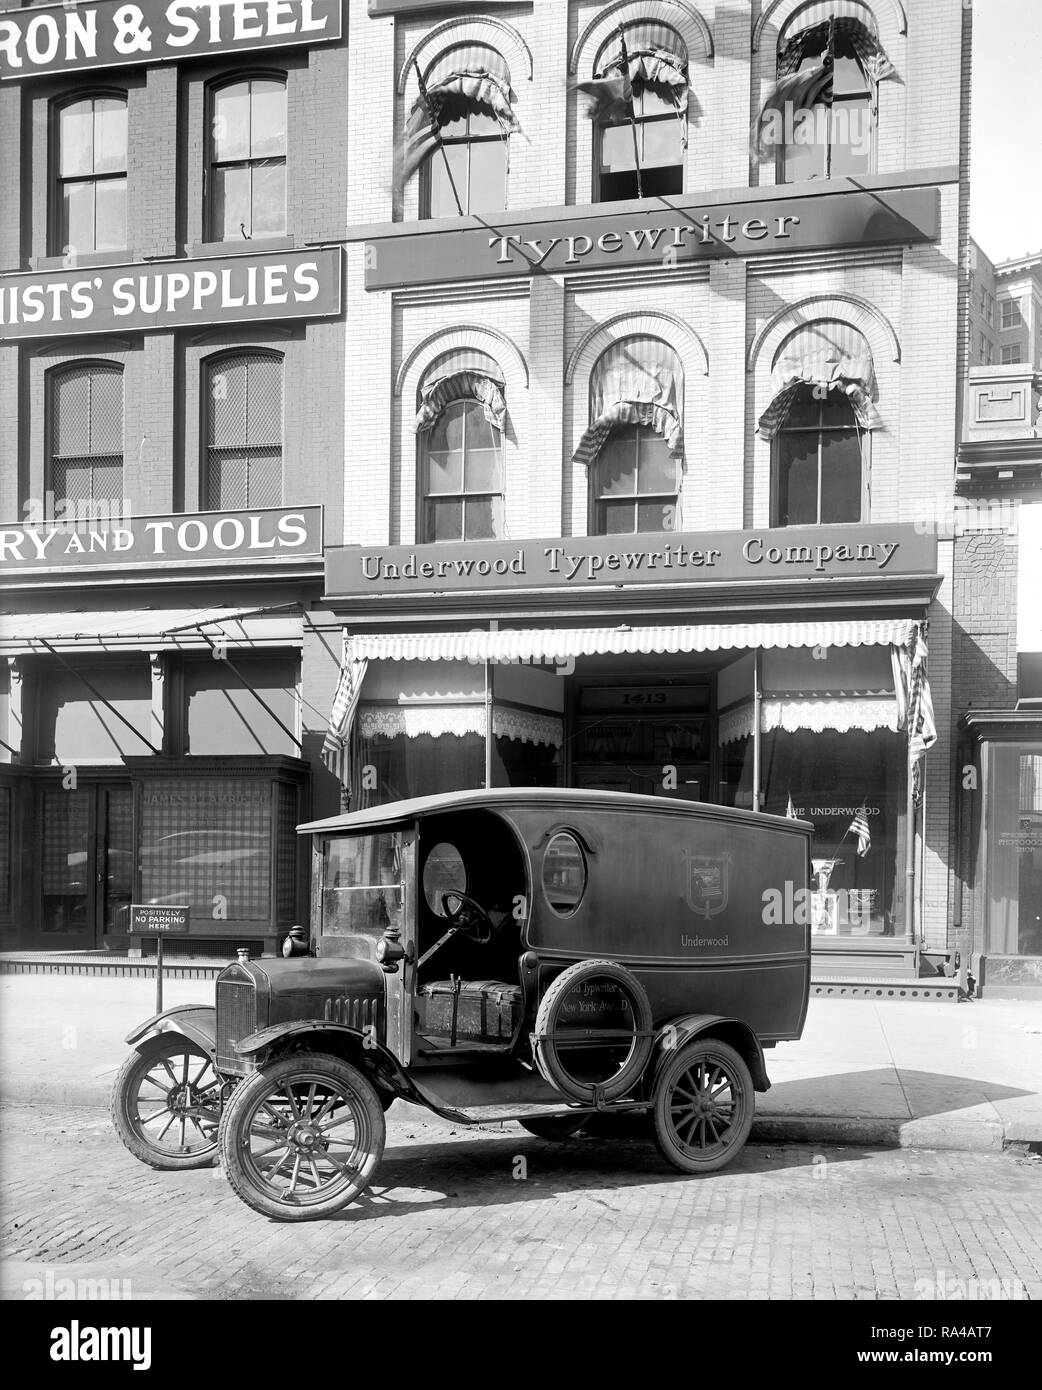 Underwood Typewriter Company exterior with truck parked outside in street  ca. early 1900s - Stock Image